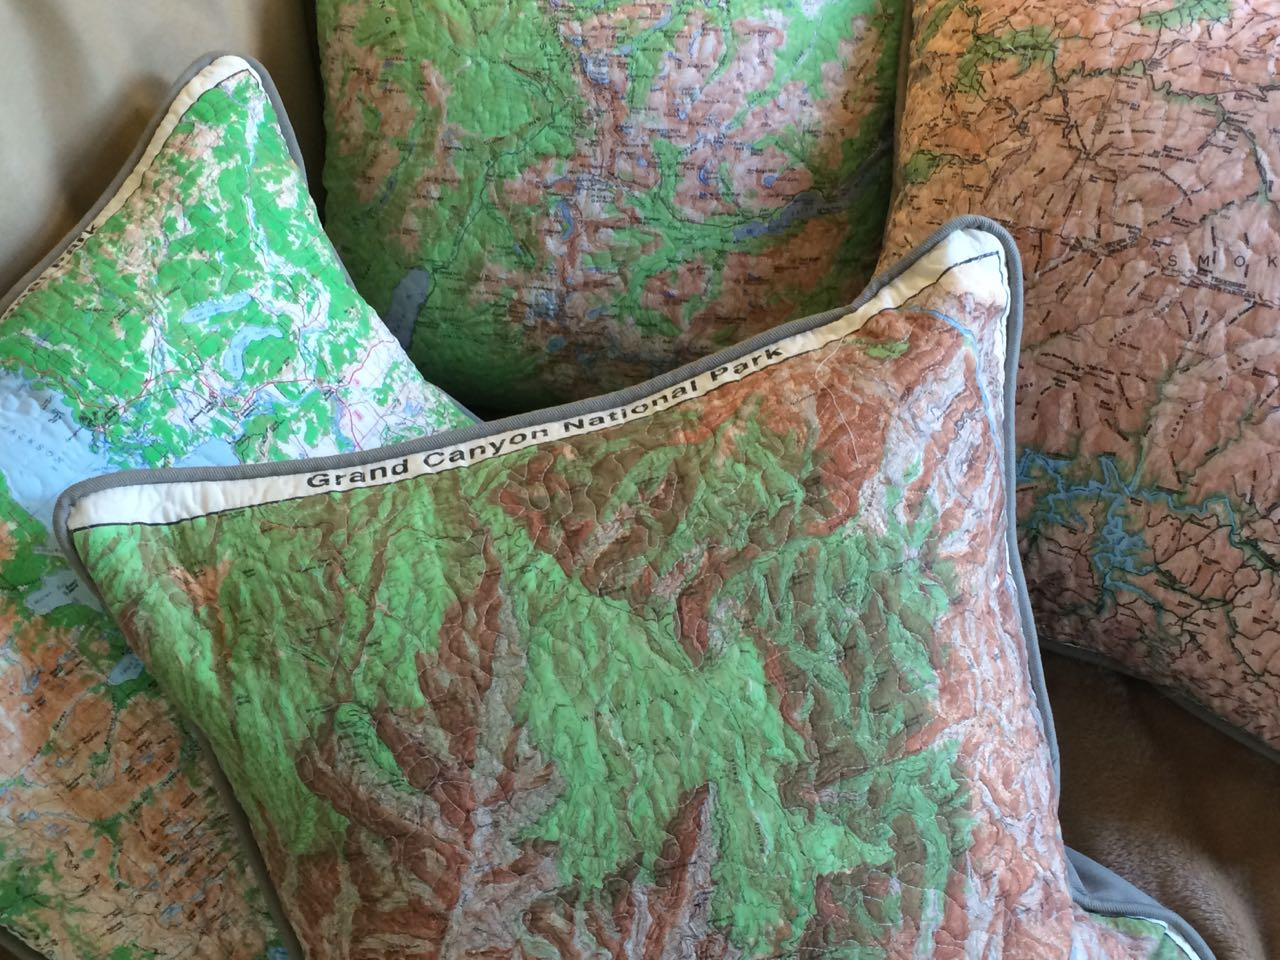 National Park Service Bandana Pillows